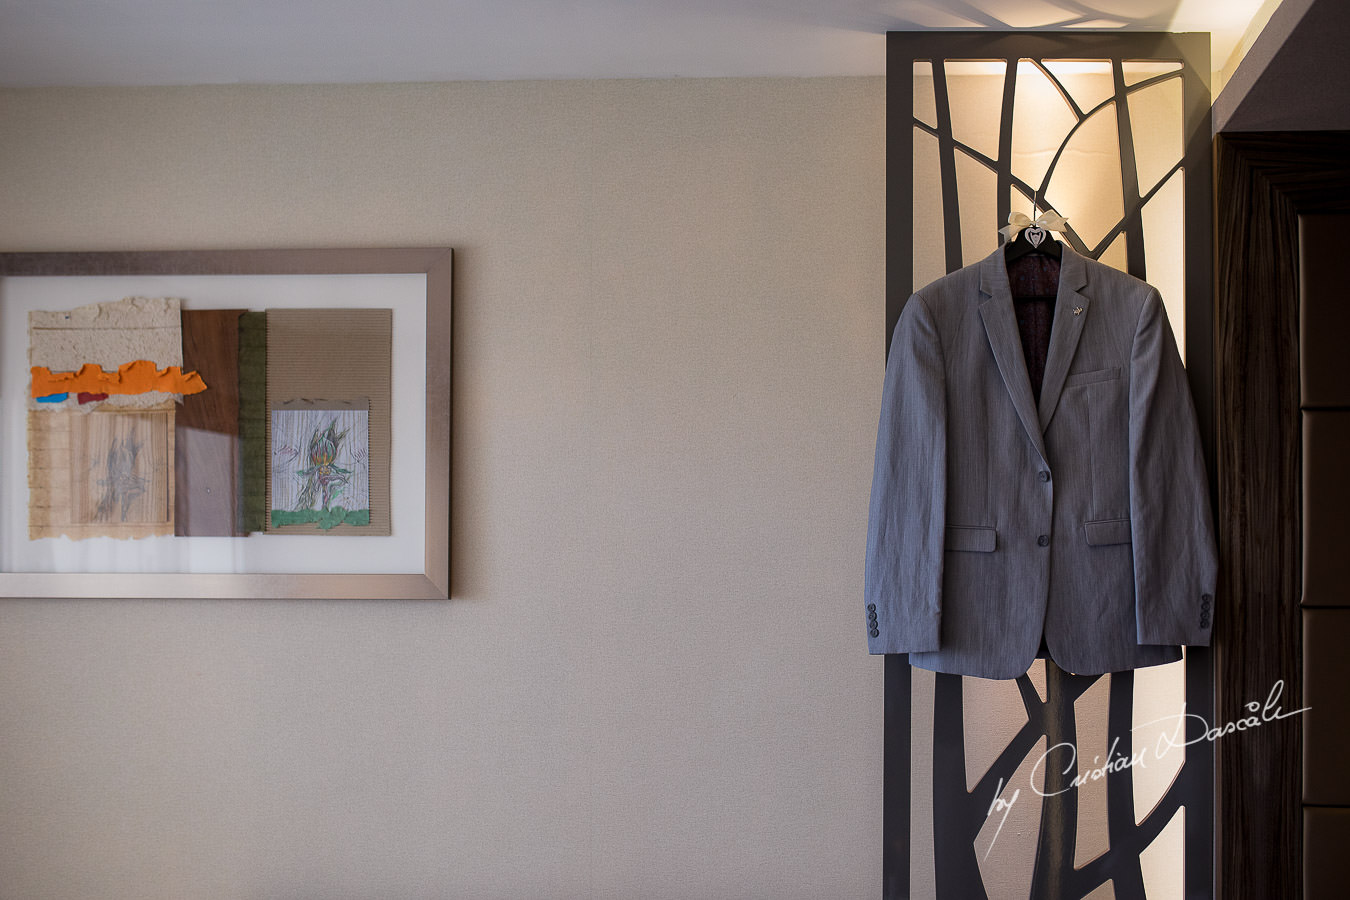 Groom's neat suit captured during an Exquisite Wedding at Asterias Beach Hotel by Cyprus Photographer Cristian Dascalu.